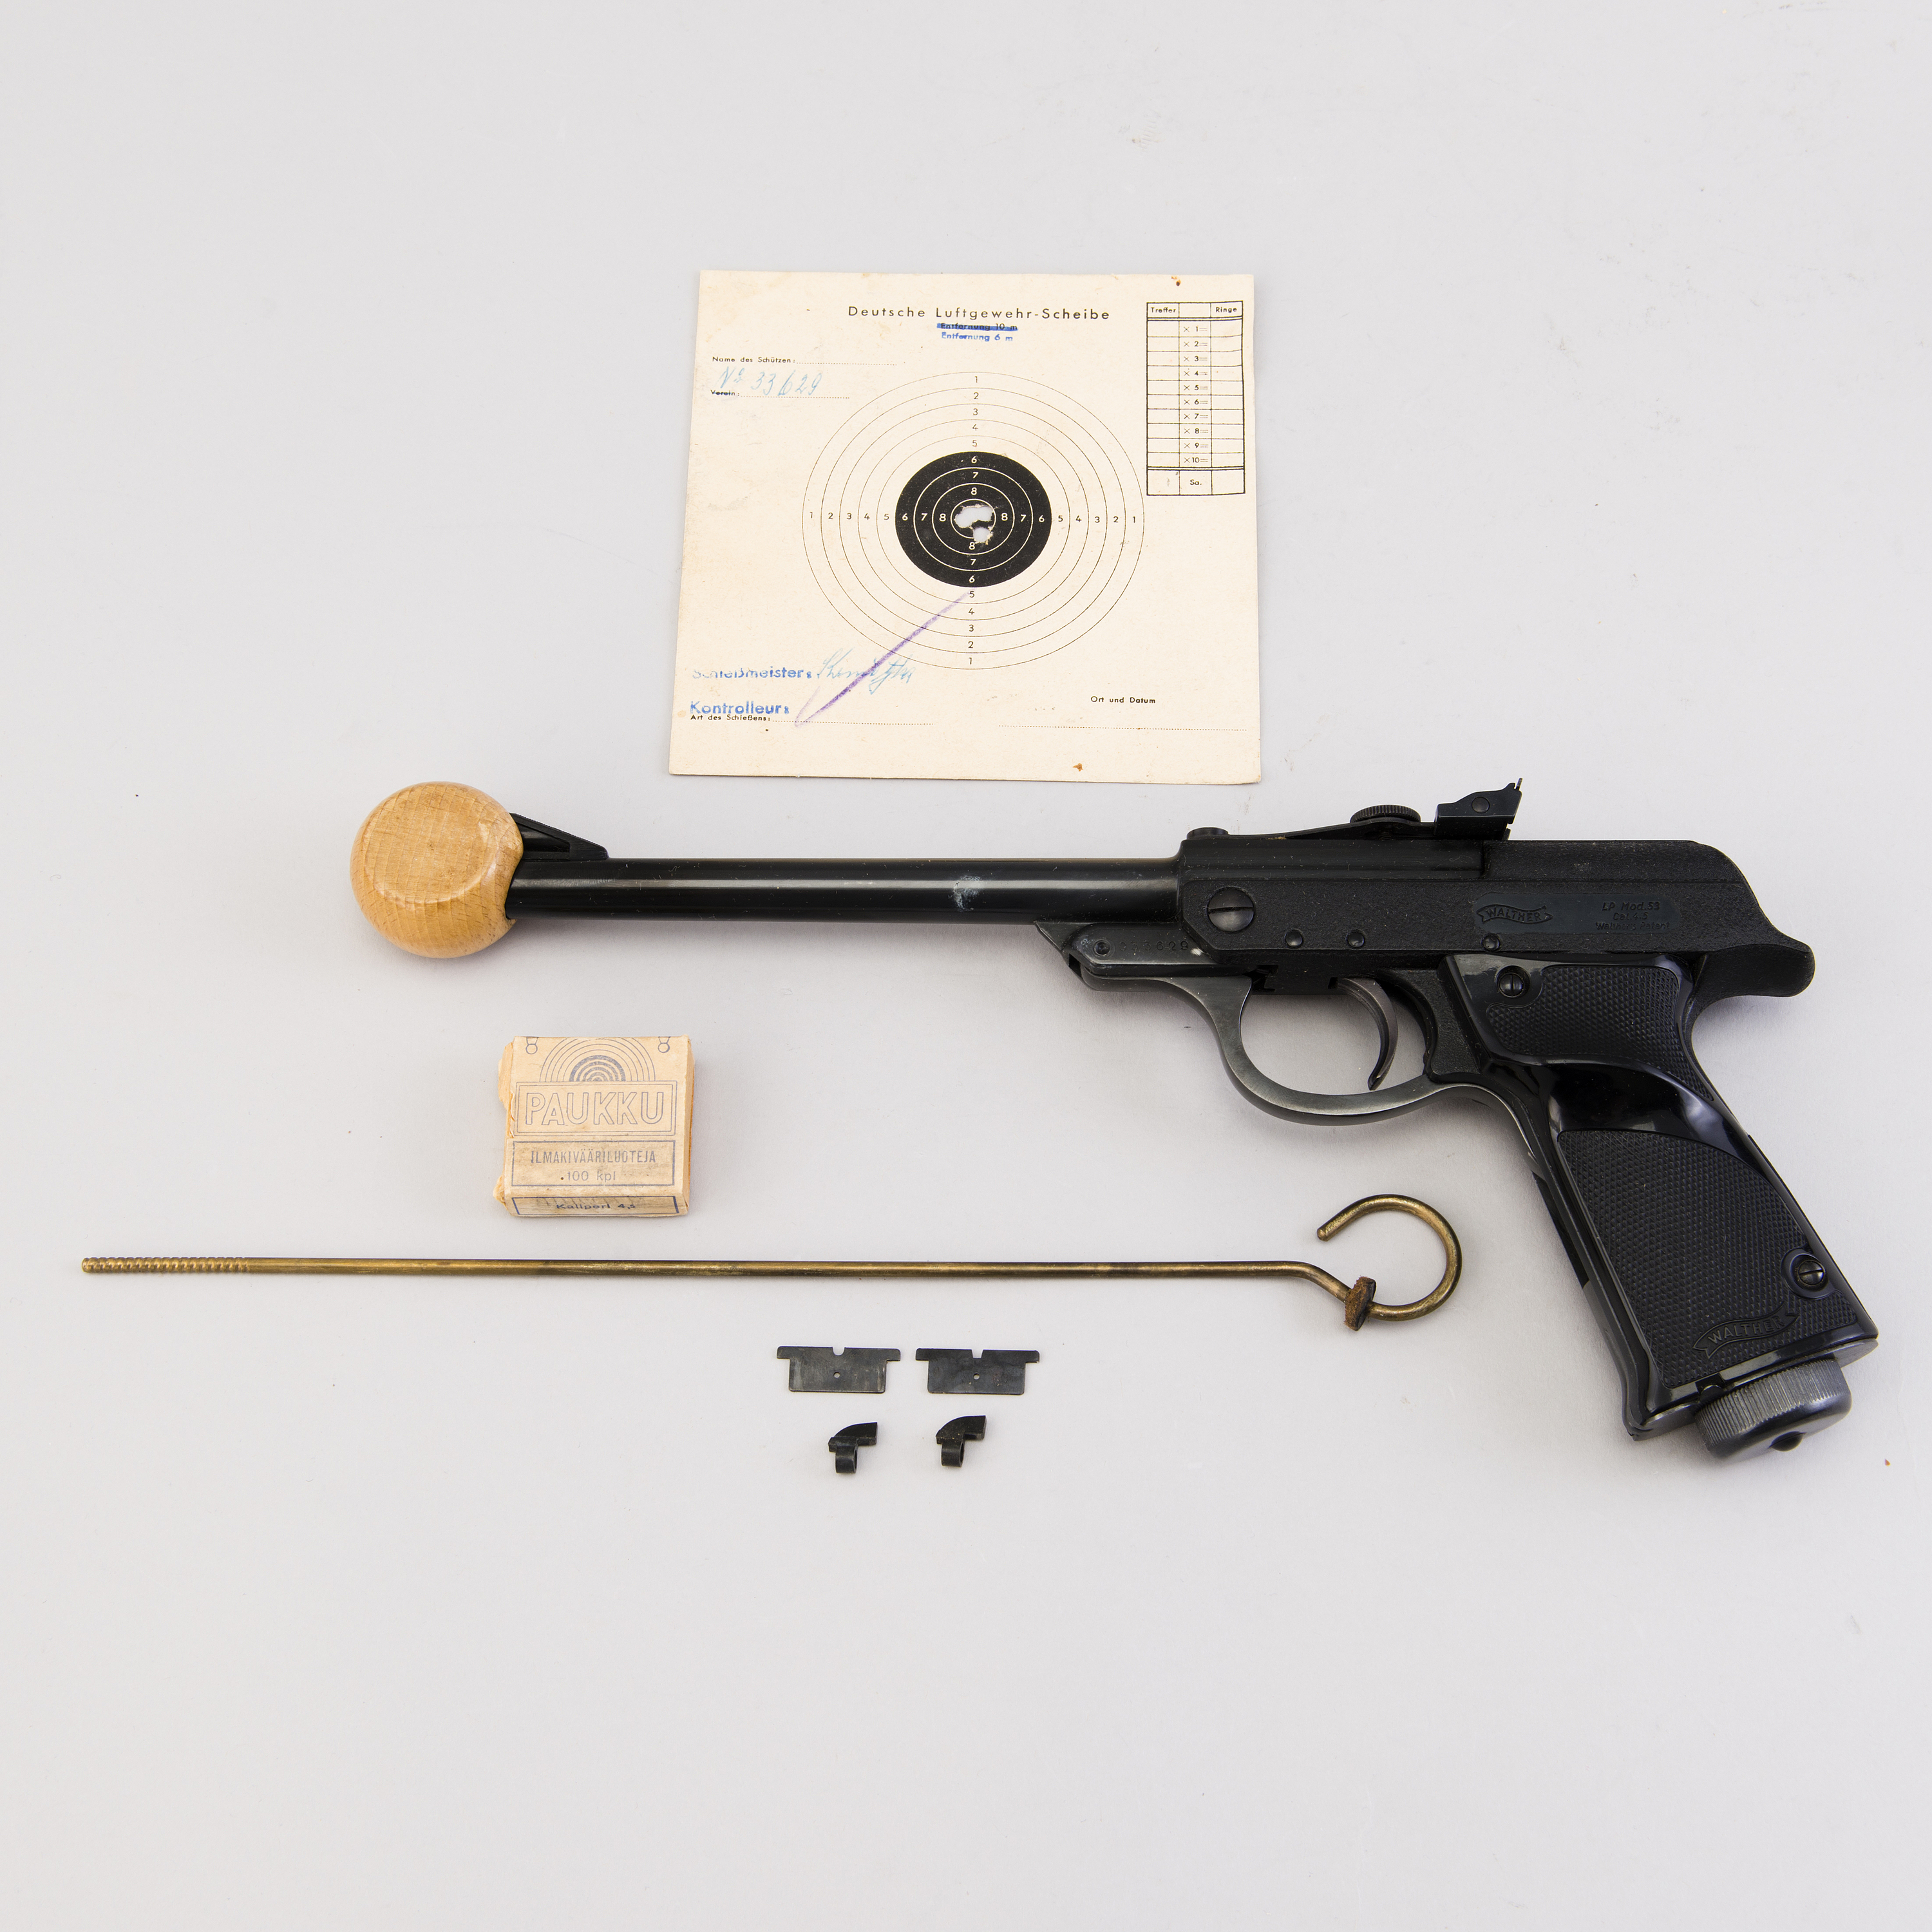 A Walther LP53 air gun, Germany  In production 1953-1976